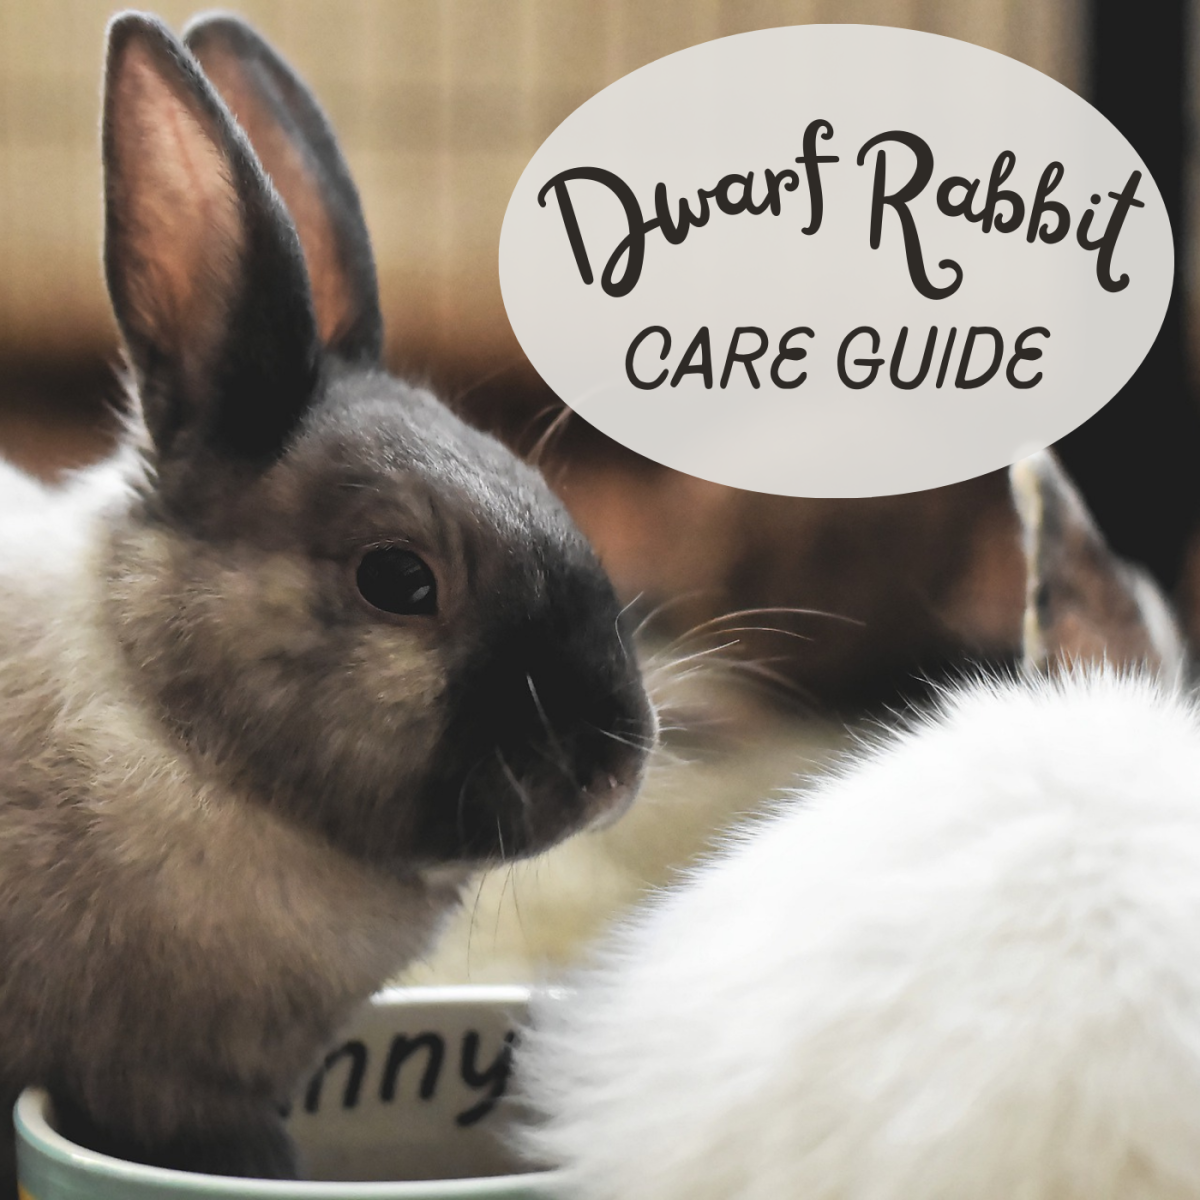 Learn everything you need to know about keeping dwarf rabbits!